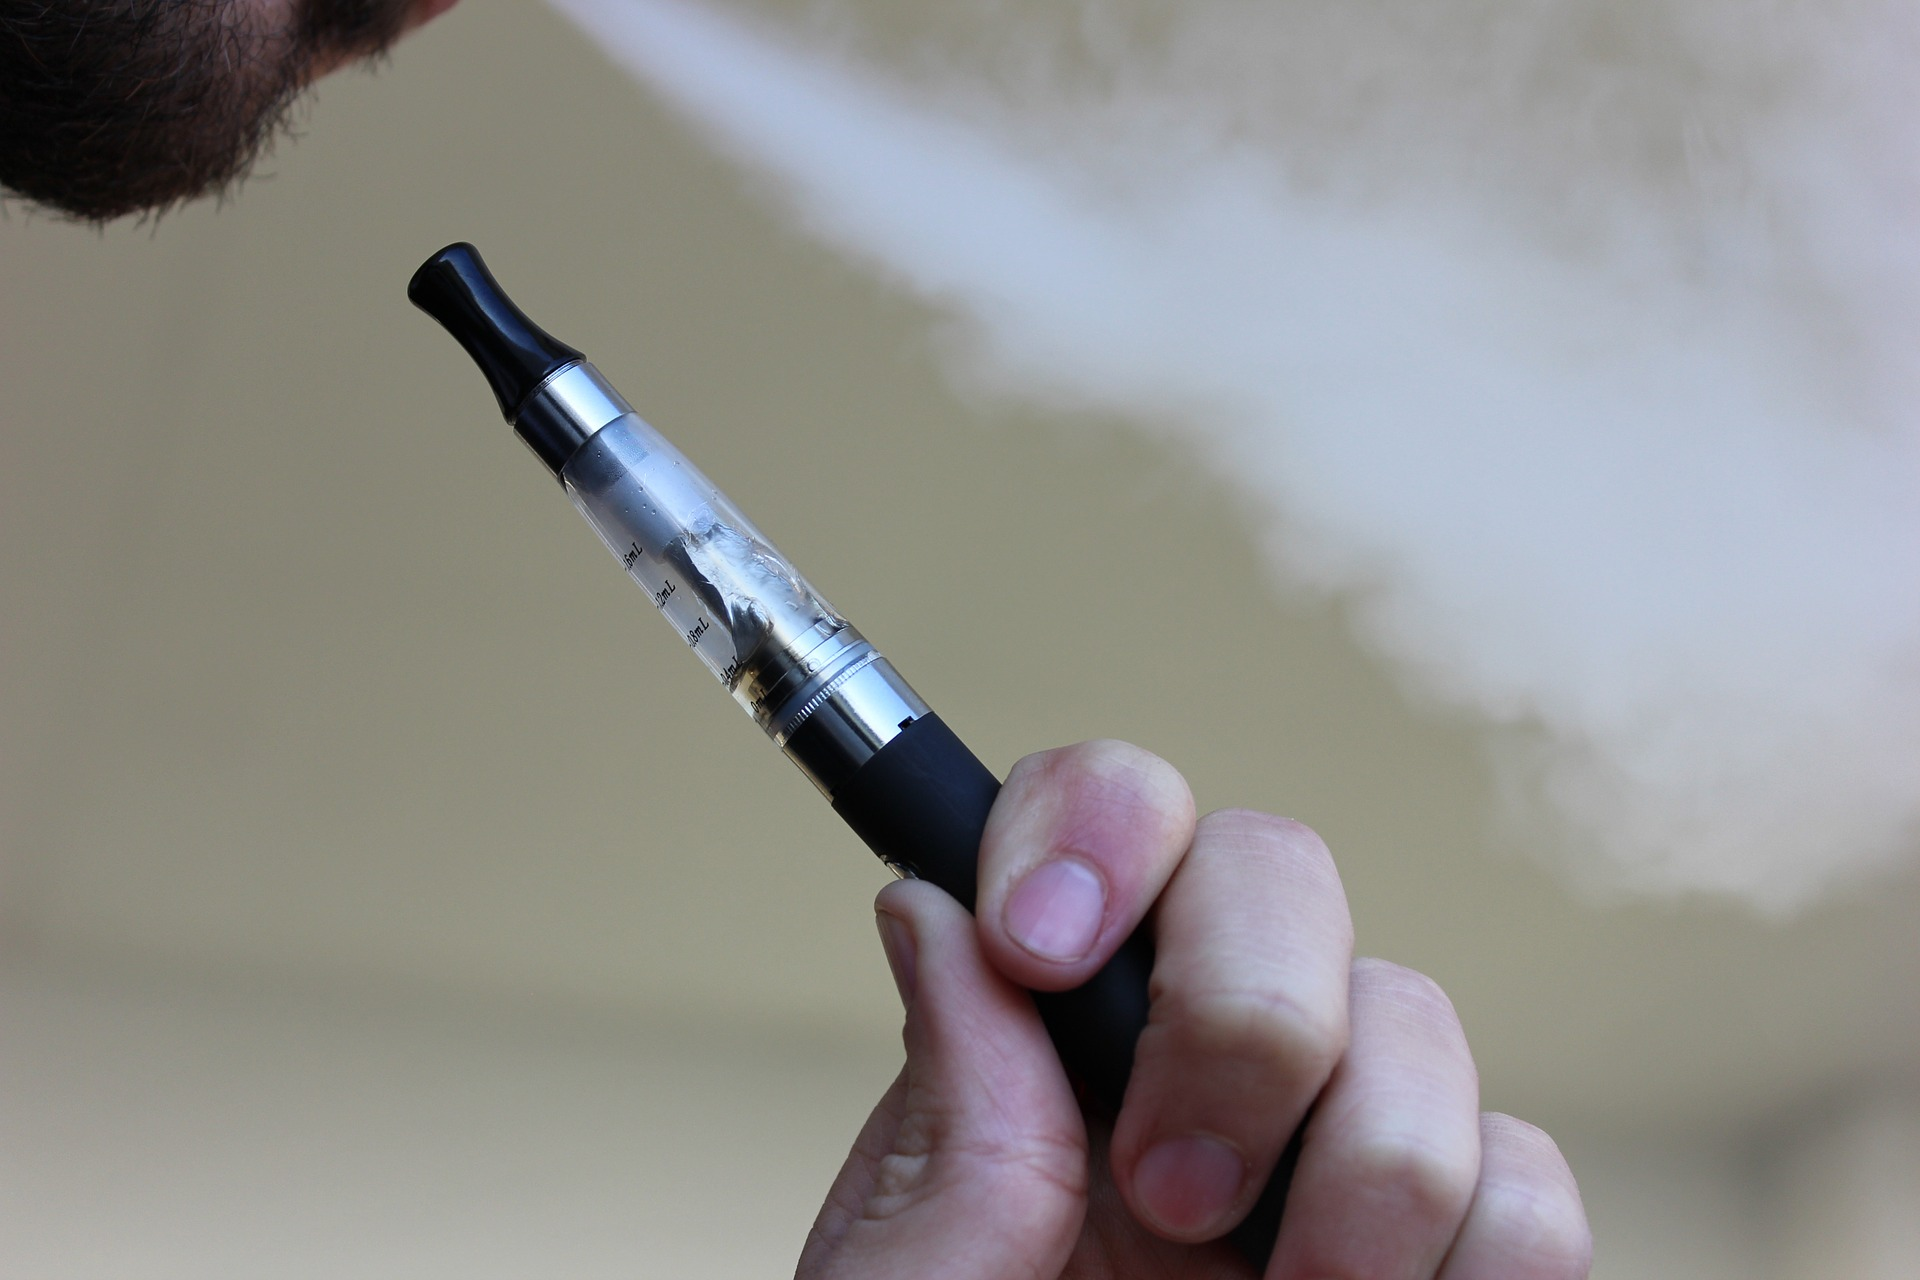 E-cigarette. Pixabay License. Free for commercial use. No attribution required.